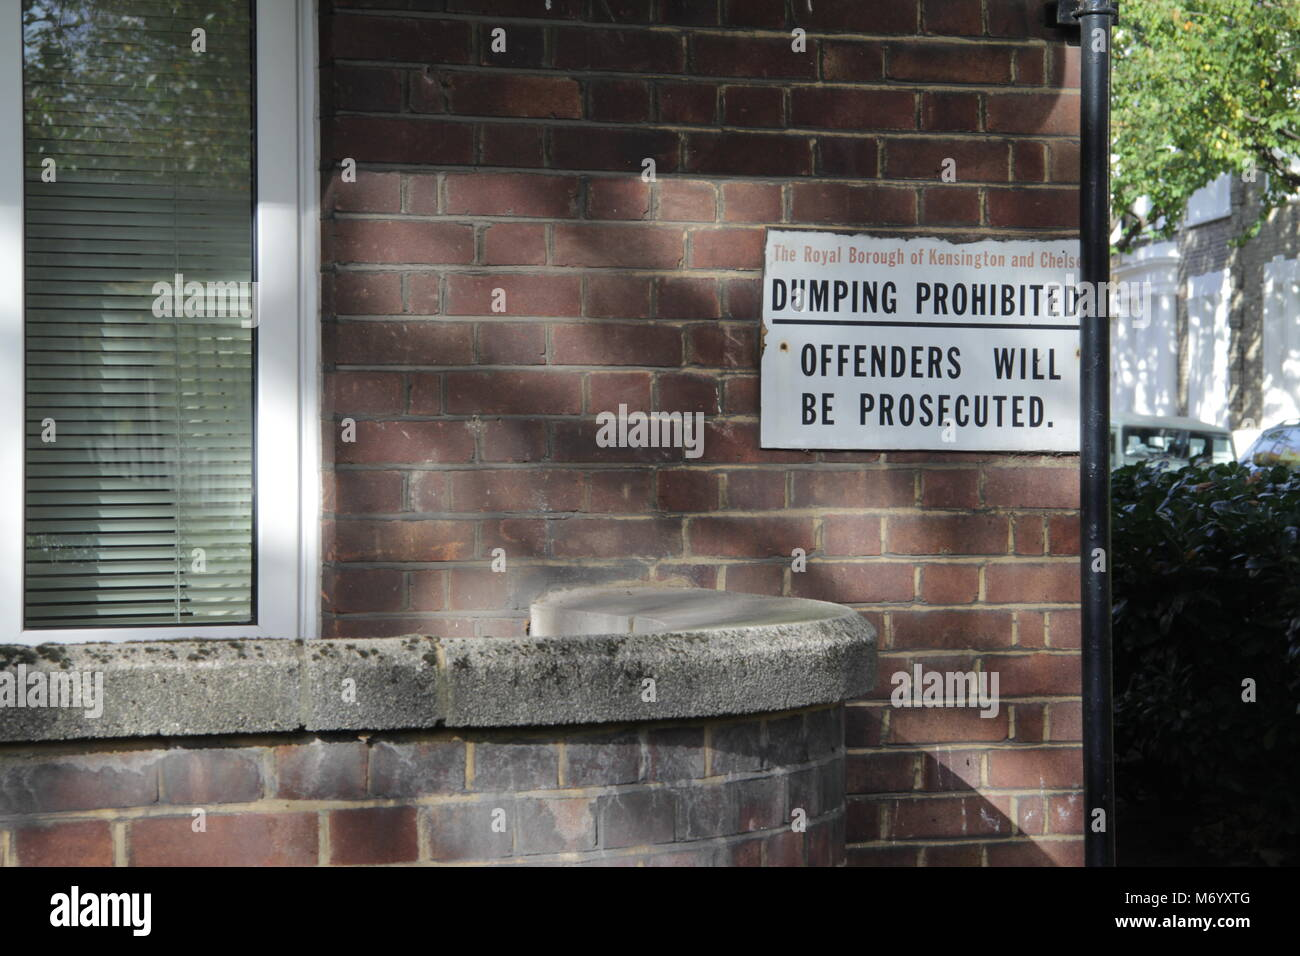 Dumping Prohibited Sign on brickwork brick wall in West London - Stock Image